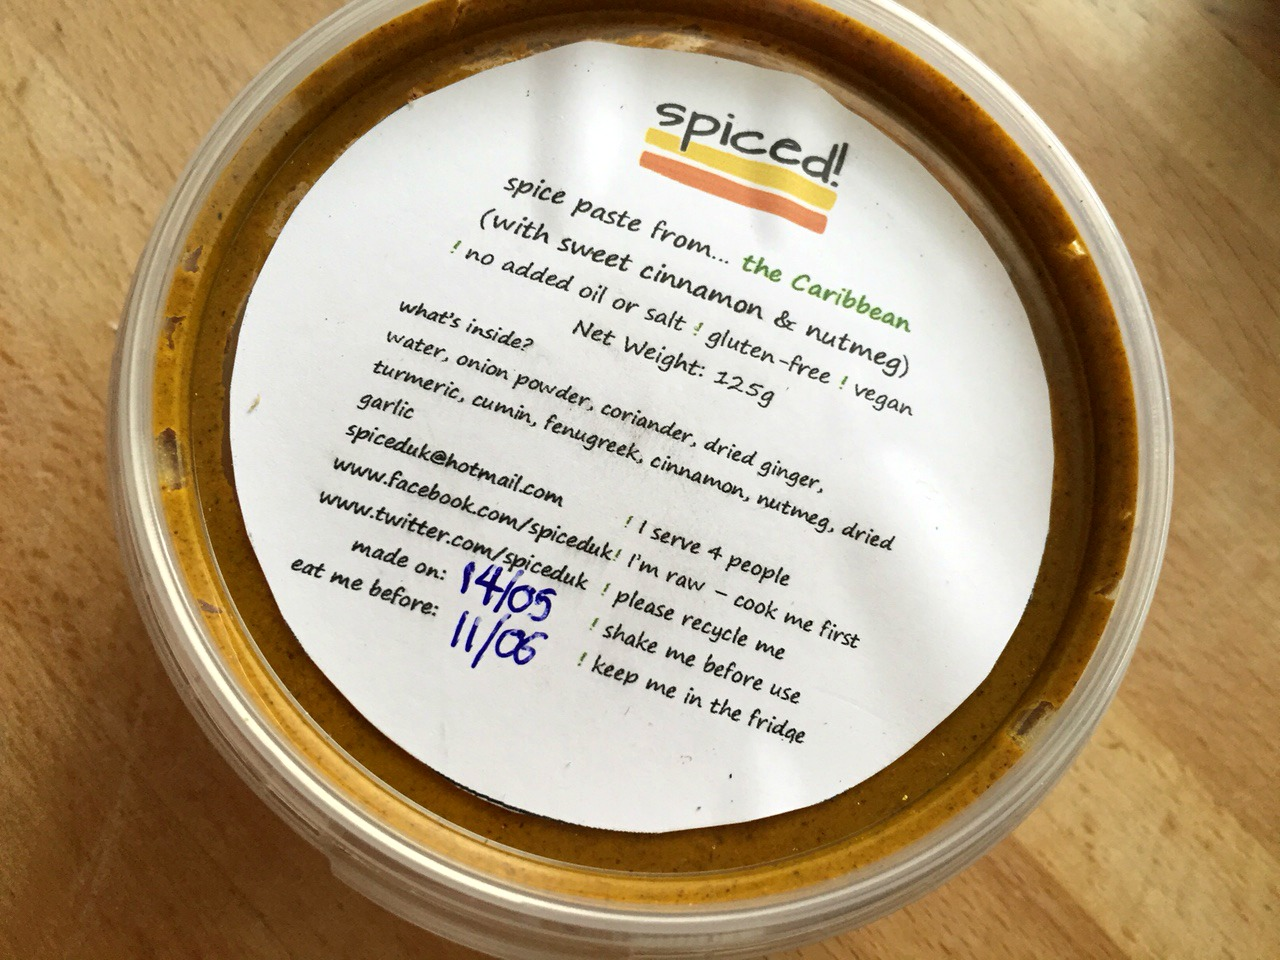 Spiced! Caribbean Spice Paste